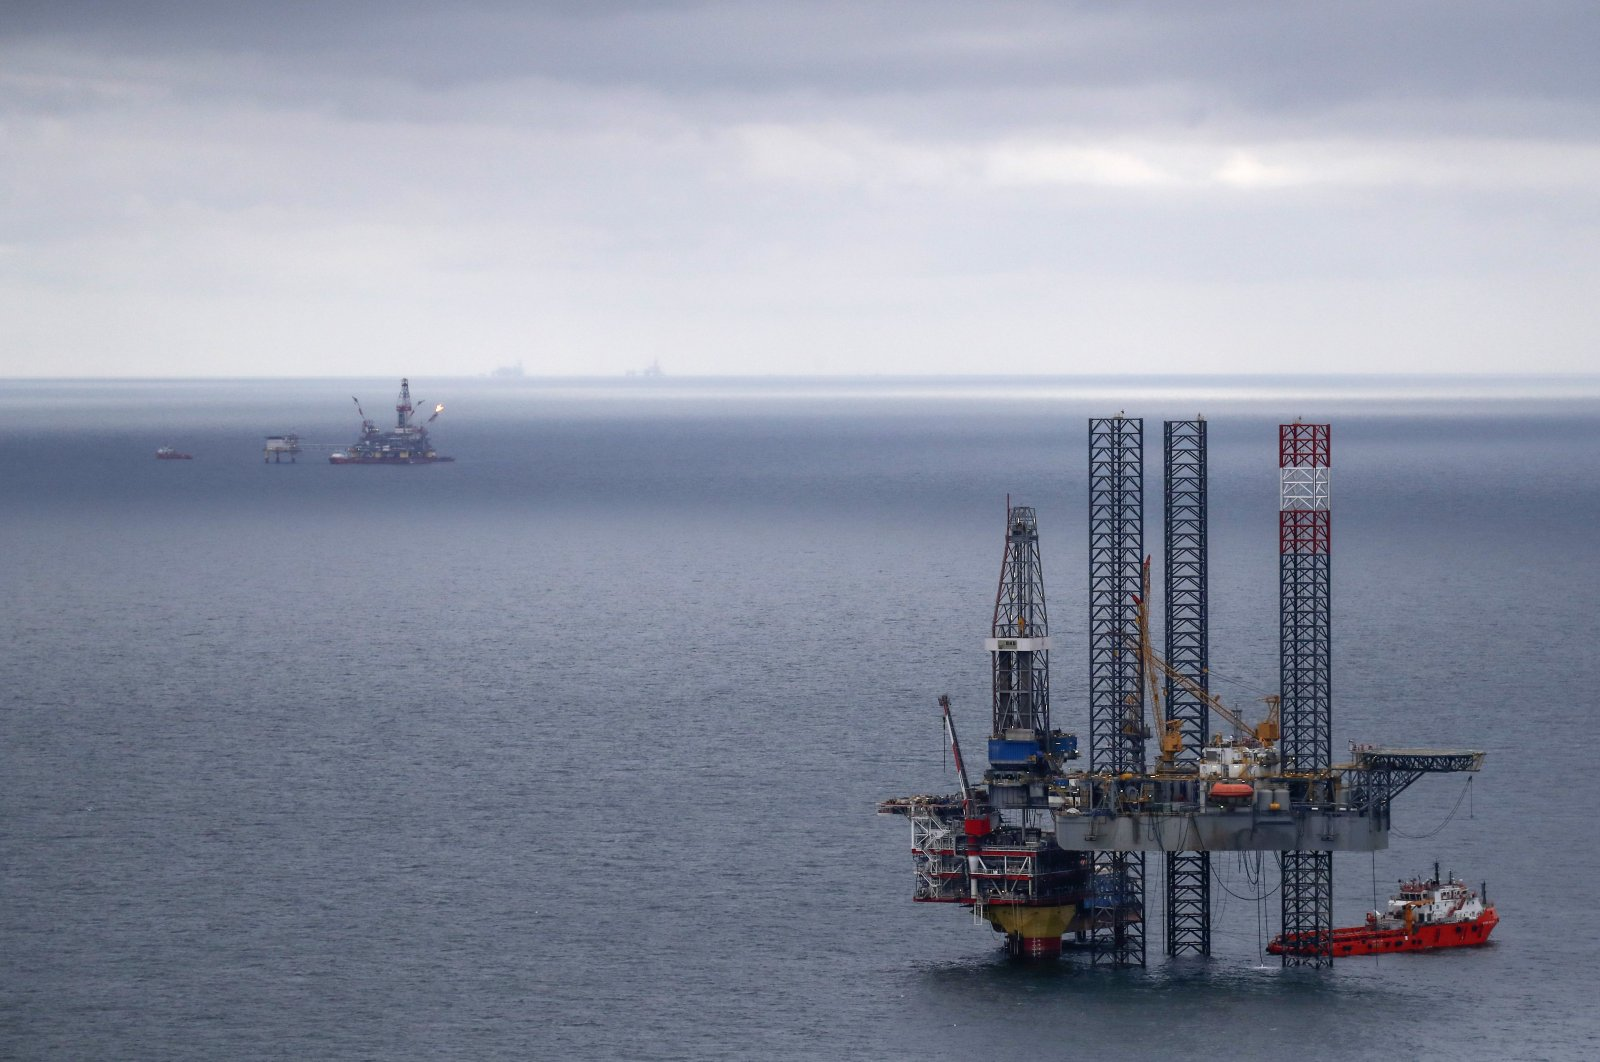 This file photo shows oil platforms operated by Lukoil company are seen at the Korchagina oil field in Caspian Sea, Russia, Oct. 17, 2018. (Reuters Photo)